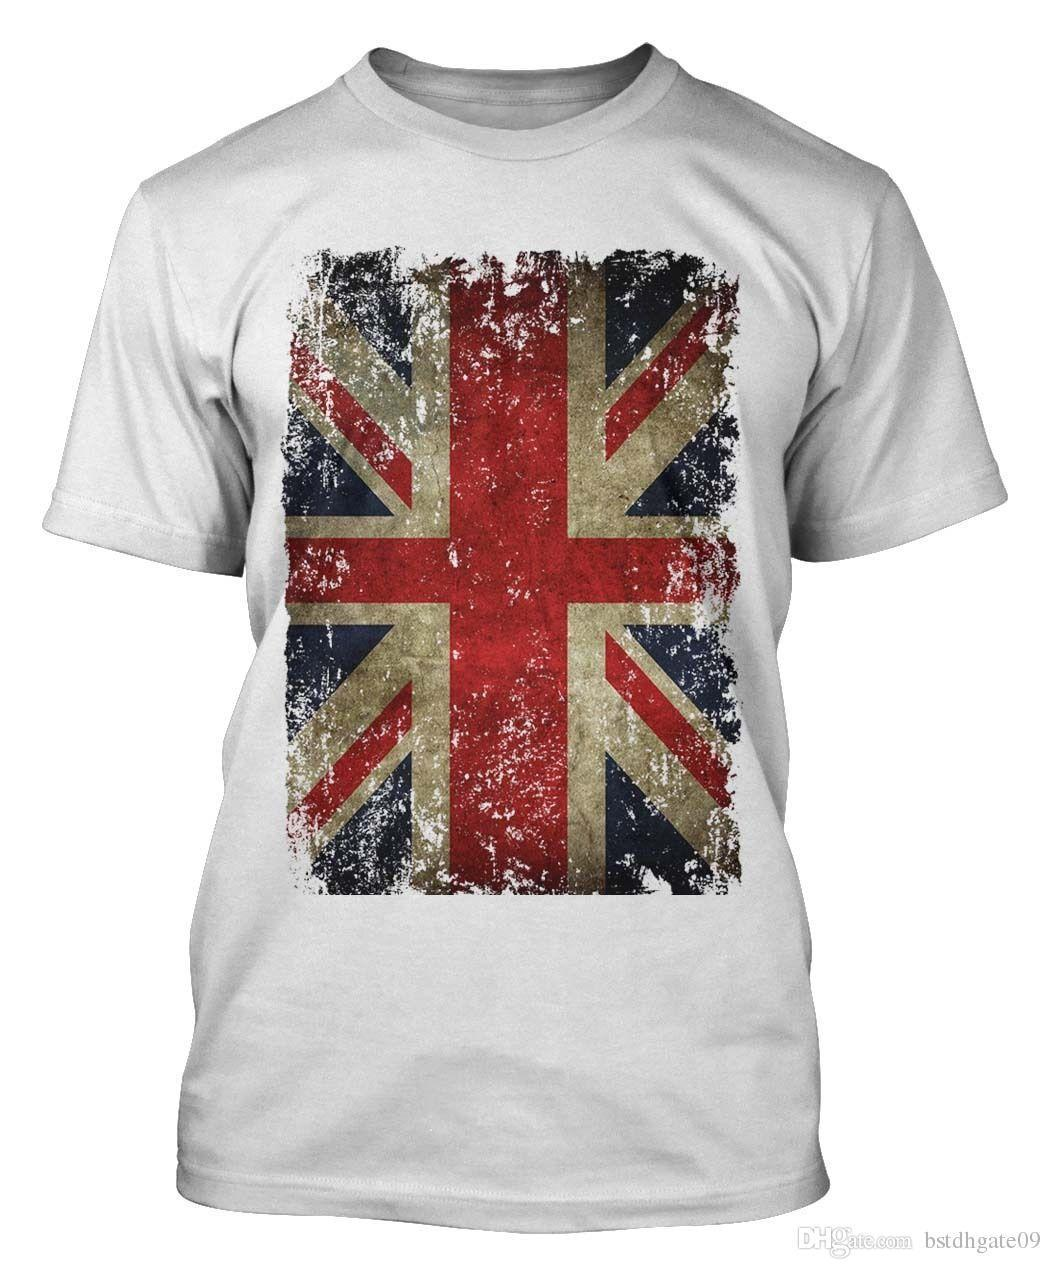 9951891c1 UNION JACK T SHIRT DISTRESSED GRUNGE VINTAGE UK BRITISH FLAG GREAT BRITAIN  Coolest Tee Shirts Cool T Shirts Design From Amesion08, $12.08| DHgate.Com